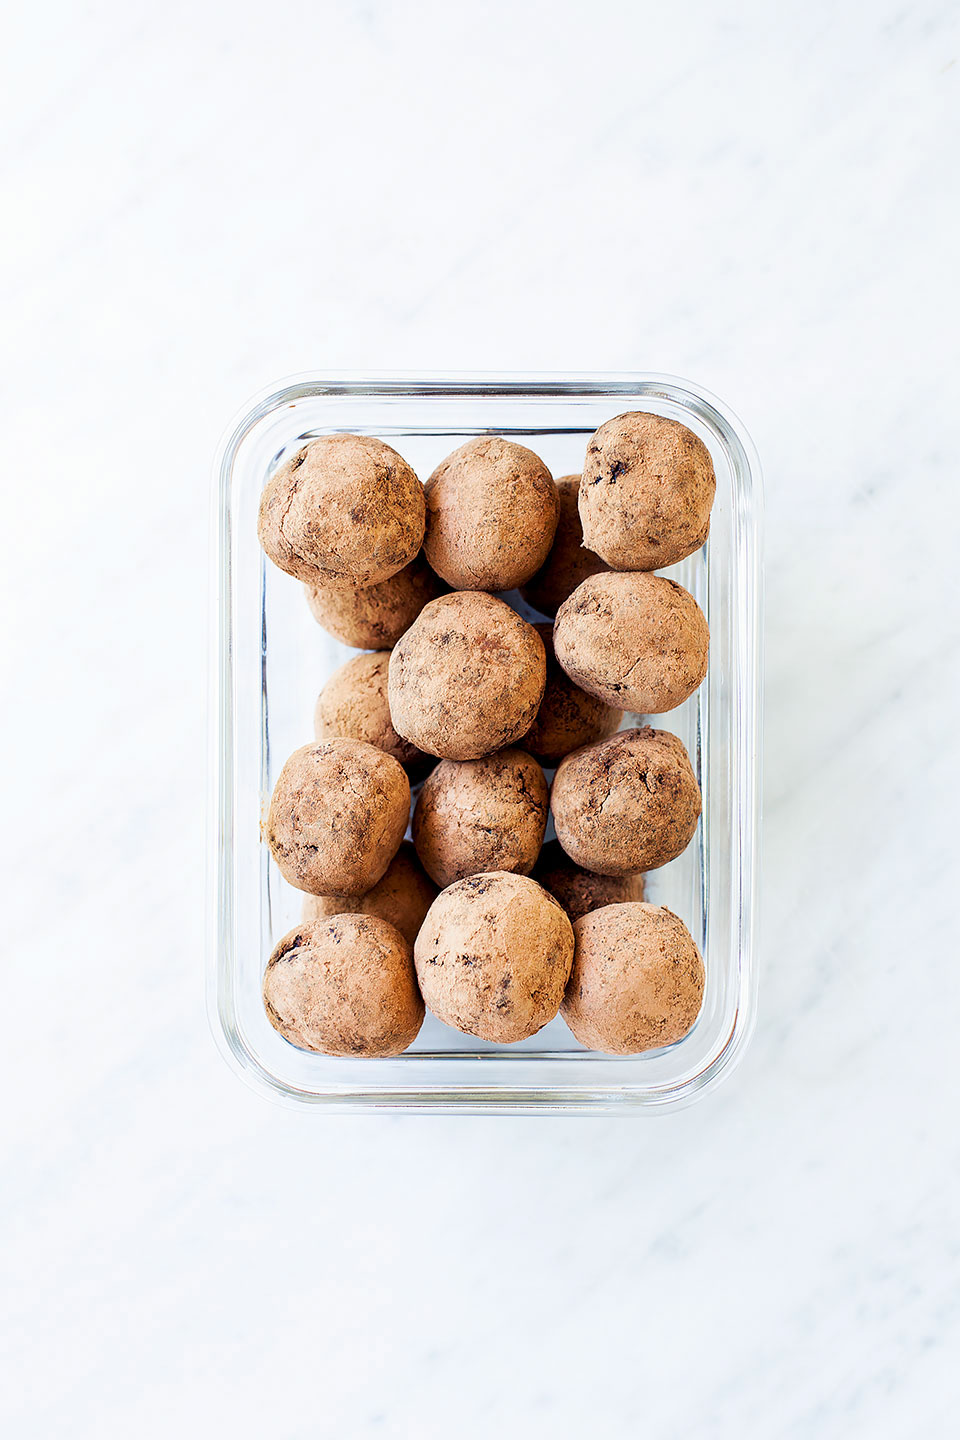 Hormone Balancing Chocolate Collagen Energy Bites   A healthy snack for seed cycling to naturally balance your hormones. Gluten-free, paleo, and naturally sweetened.   Loveleaf Co.